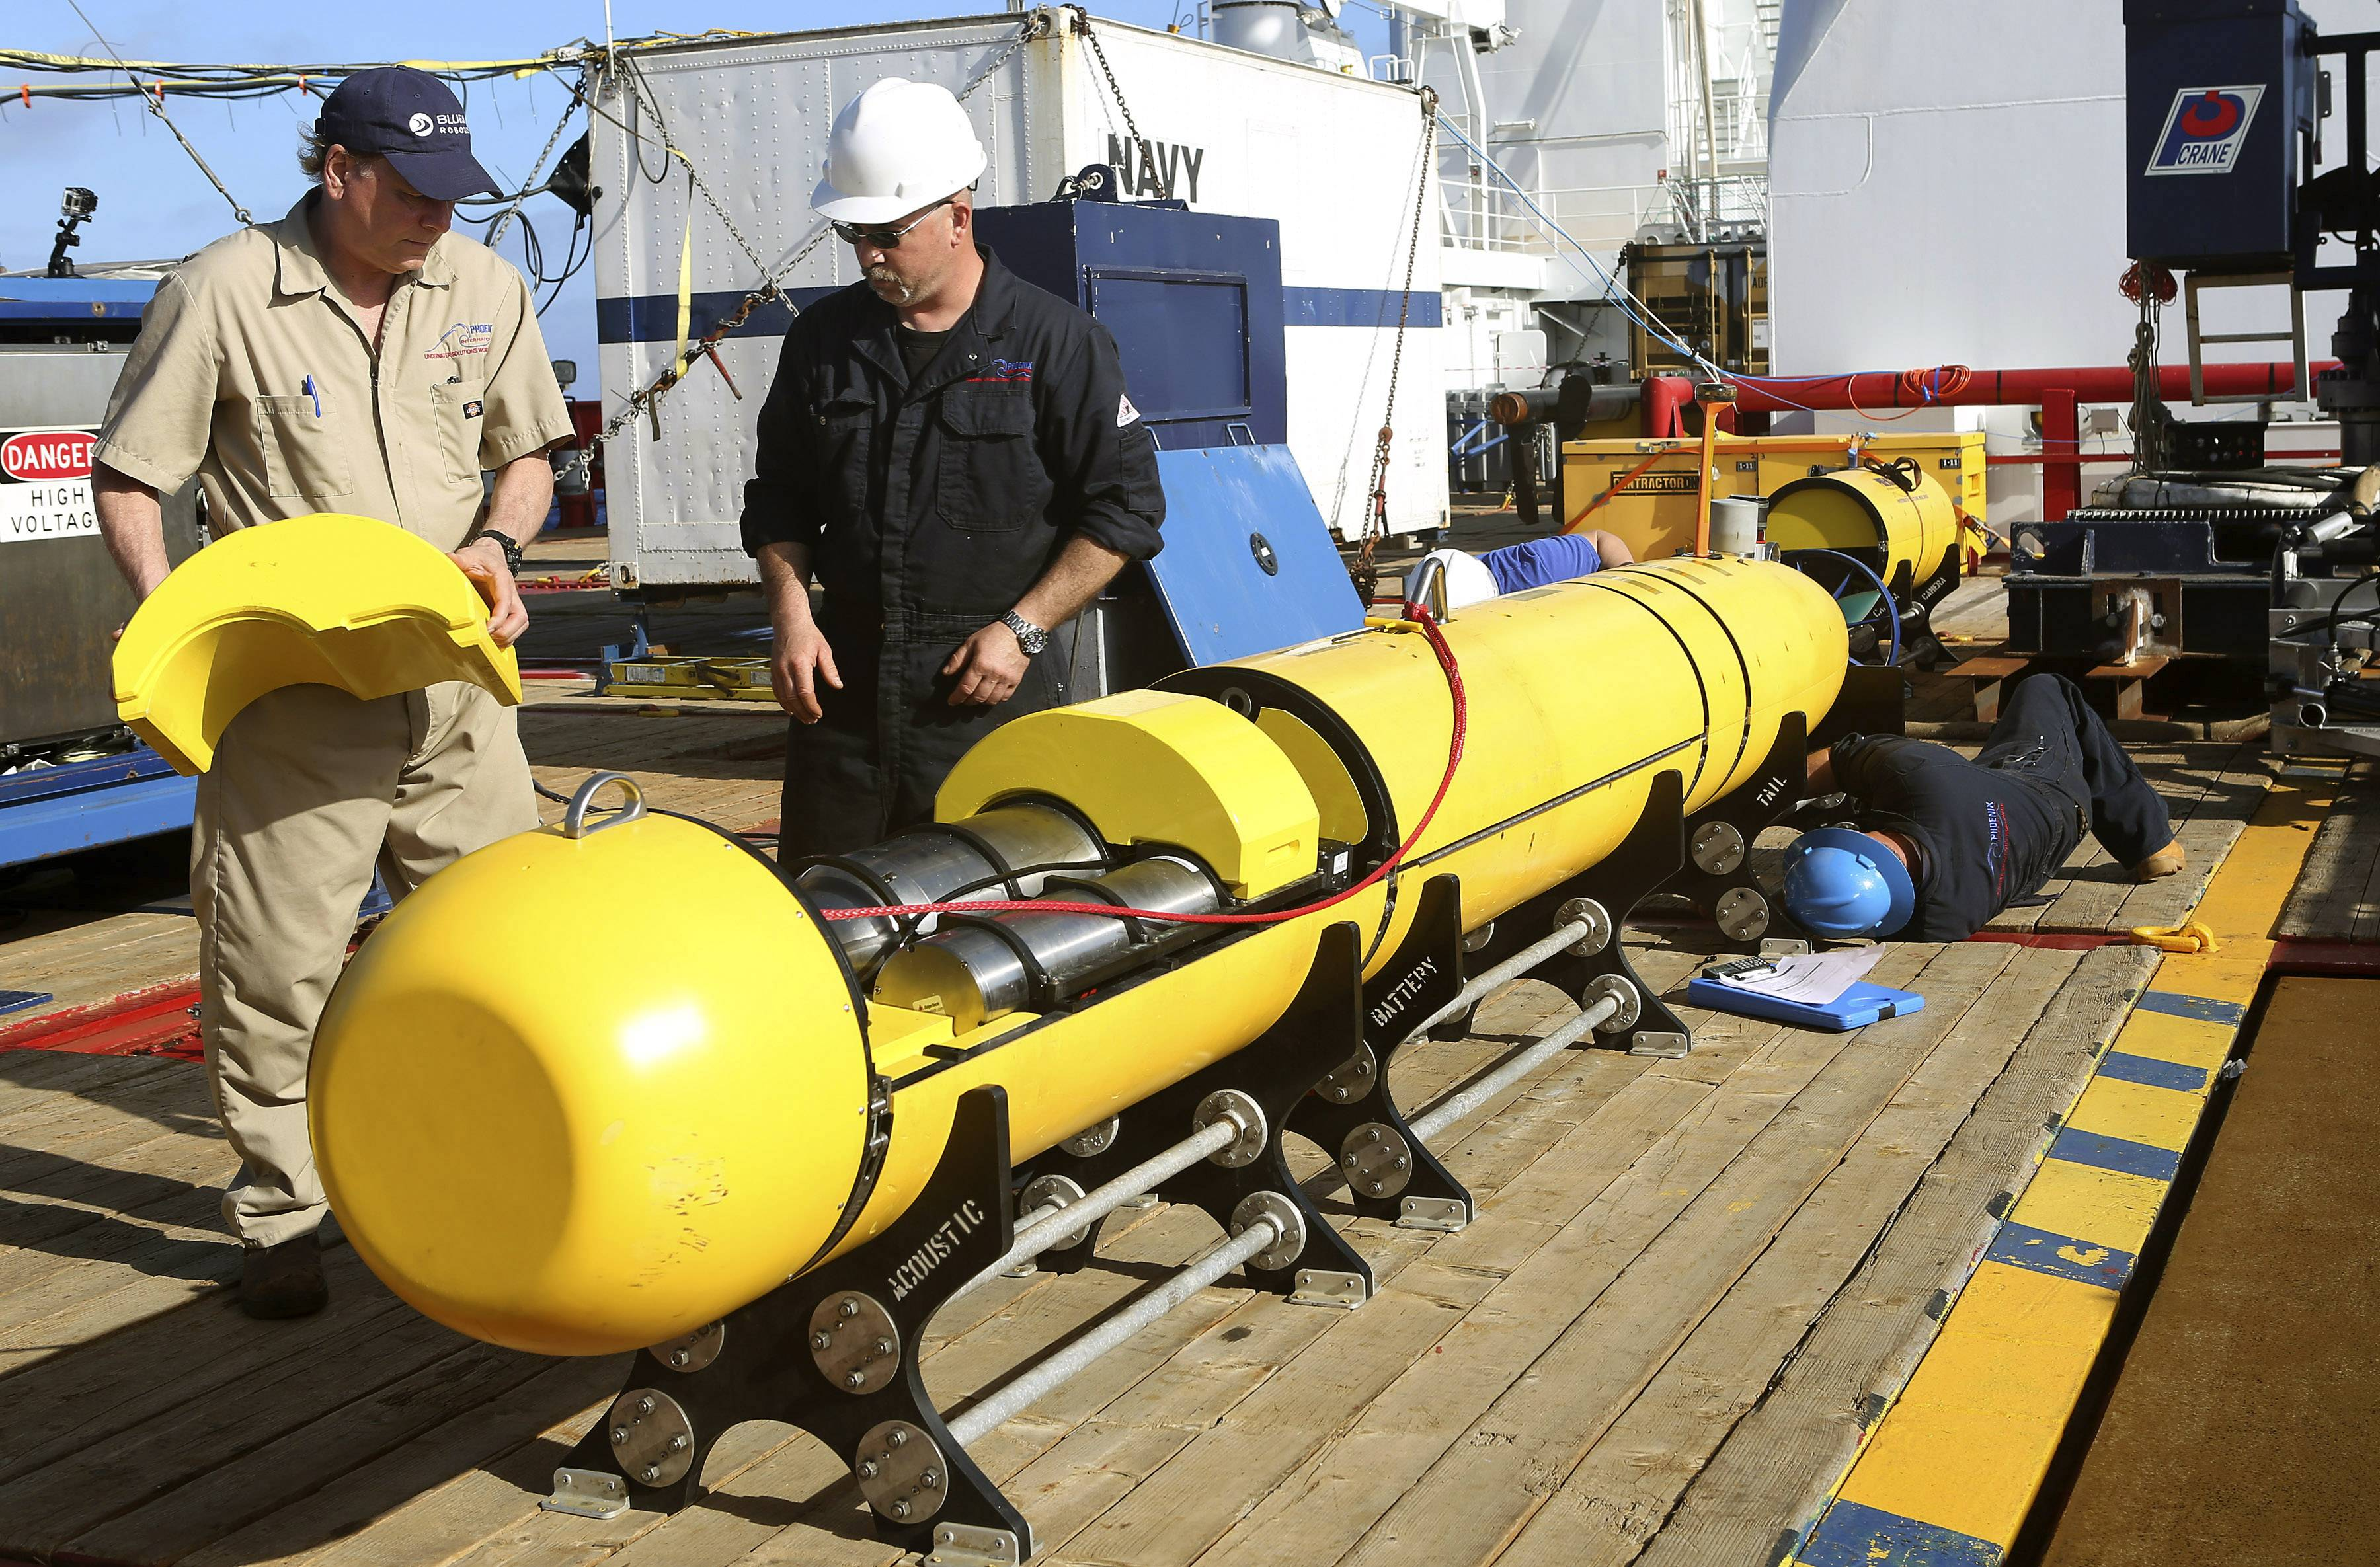 Phoenix International's Chris Minor, right, and Curt Newport inspect an autonomous underwater vehicle Monday before it is deployed from ADV Ocean Shield in the search of the missing Malaysia Airlines Flight 370 in the southern Indian Ocean. The search area for the missing Malaysian jet has proved too deep for the robotic submarine which was hauled back to the surface of the Indian Ocean less than half way through its first seabed hunt for wreckage and the all-important black boxes, authorities said on Tuesday.